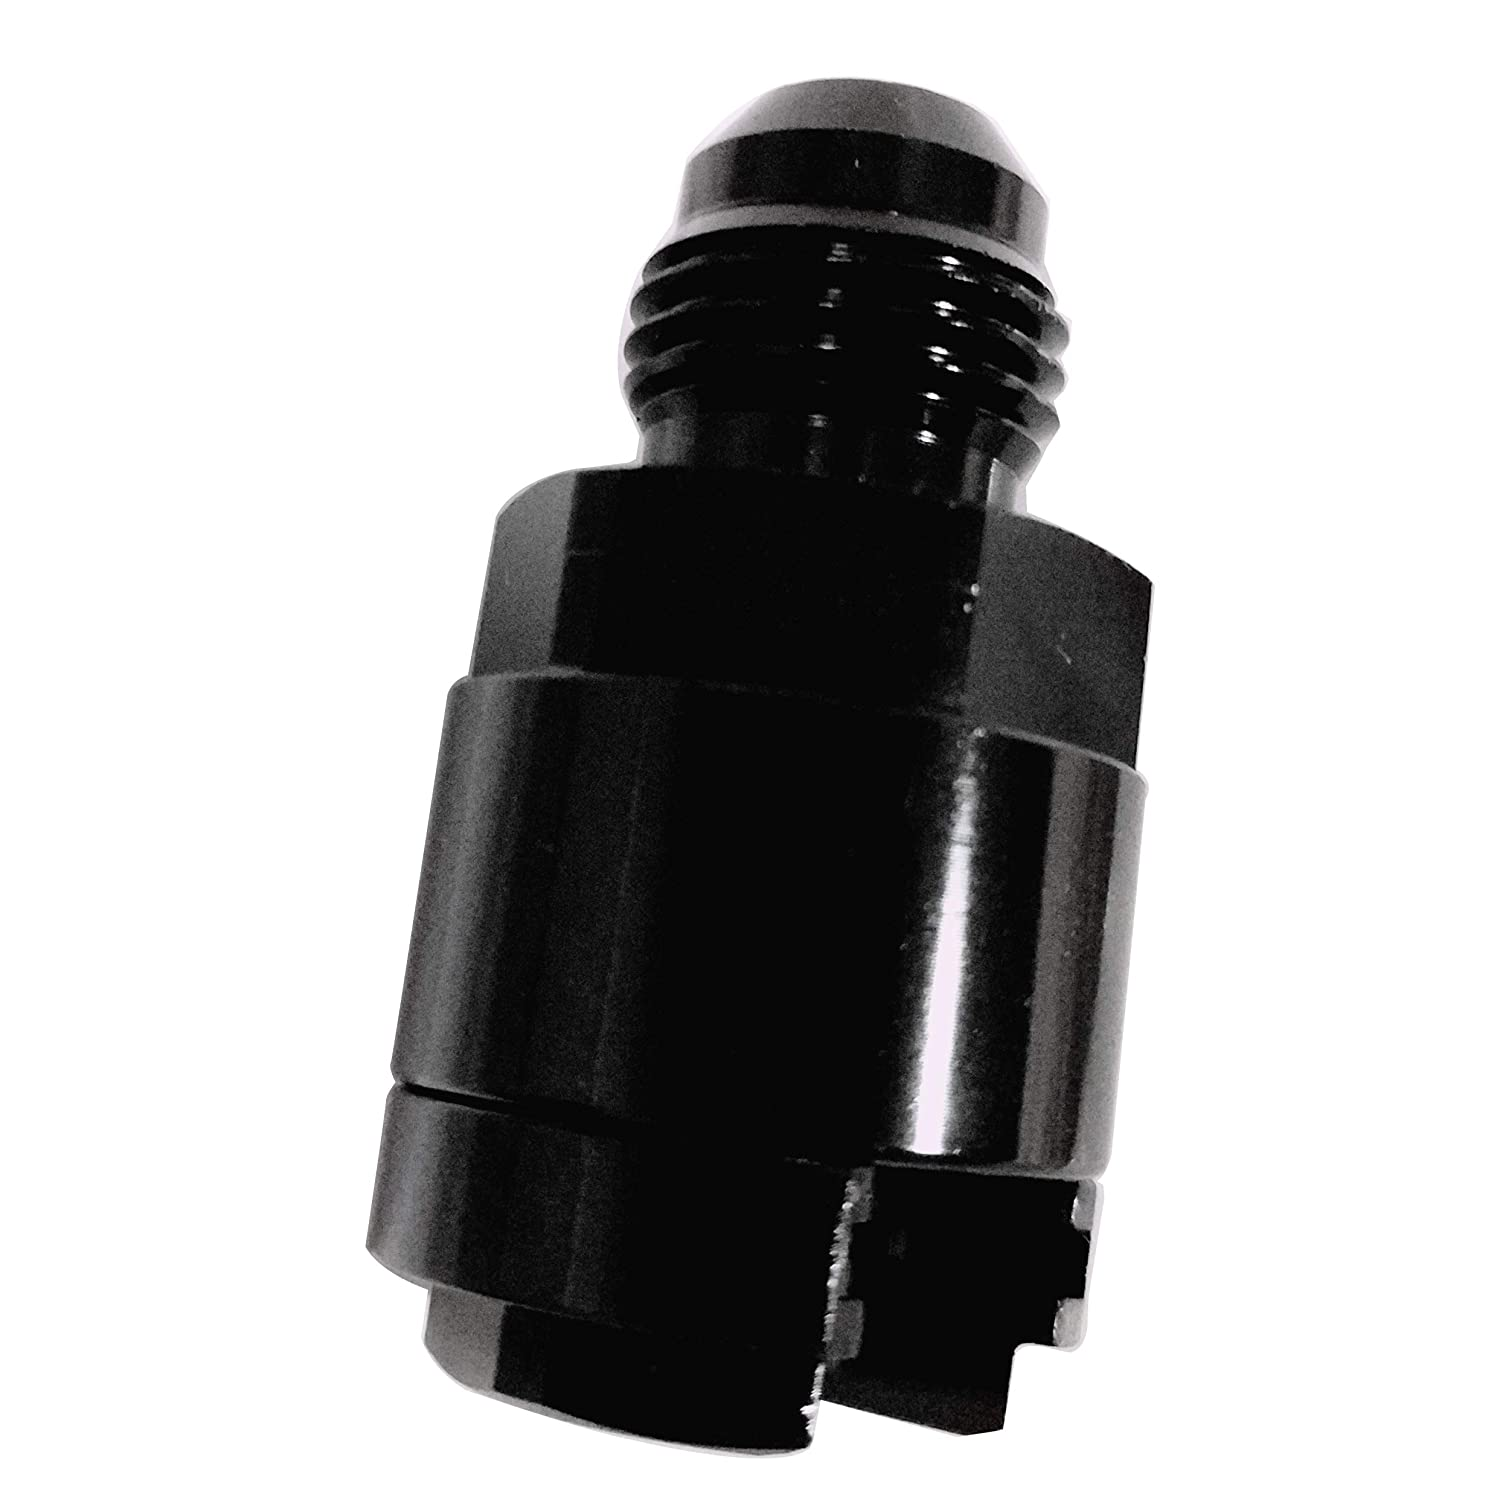 Quick Disconnect Fuel Rail Line EFI Adapter Fitting LS LS1 LS3-6 AN to 3//8 Hose GM Quick-Connect Female Push-on Aluminum Black